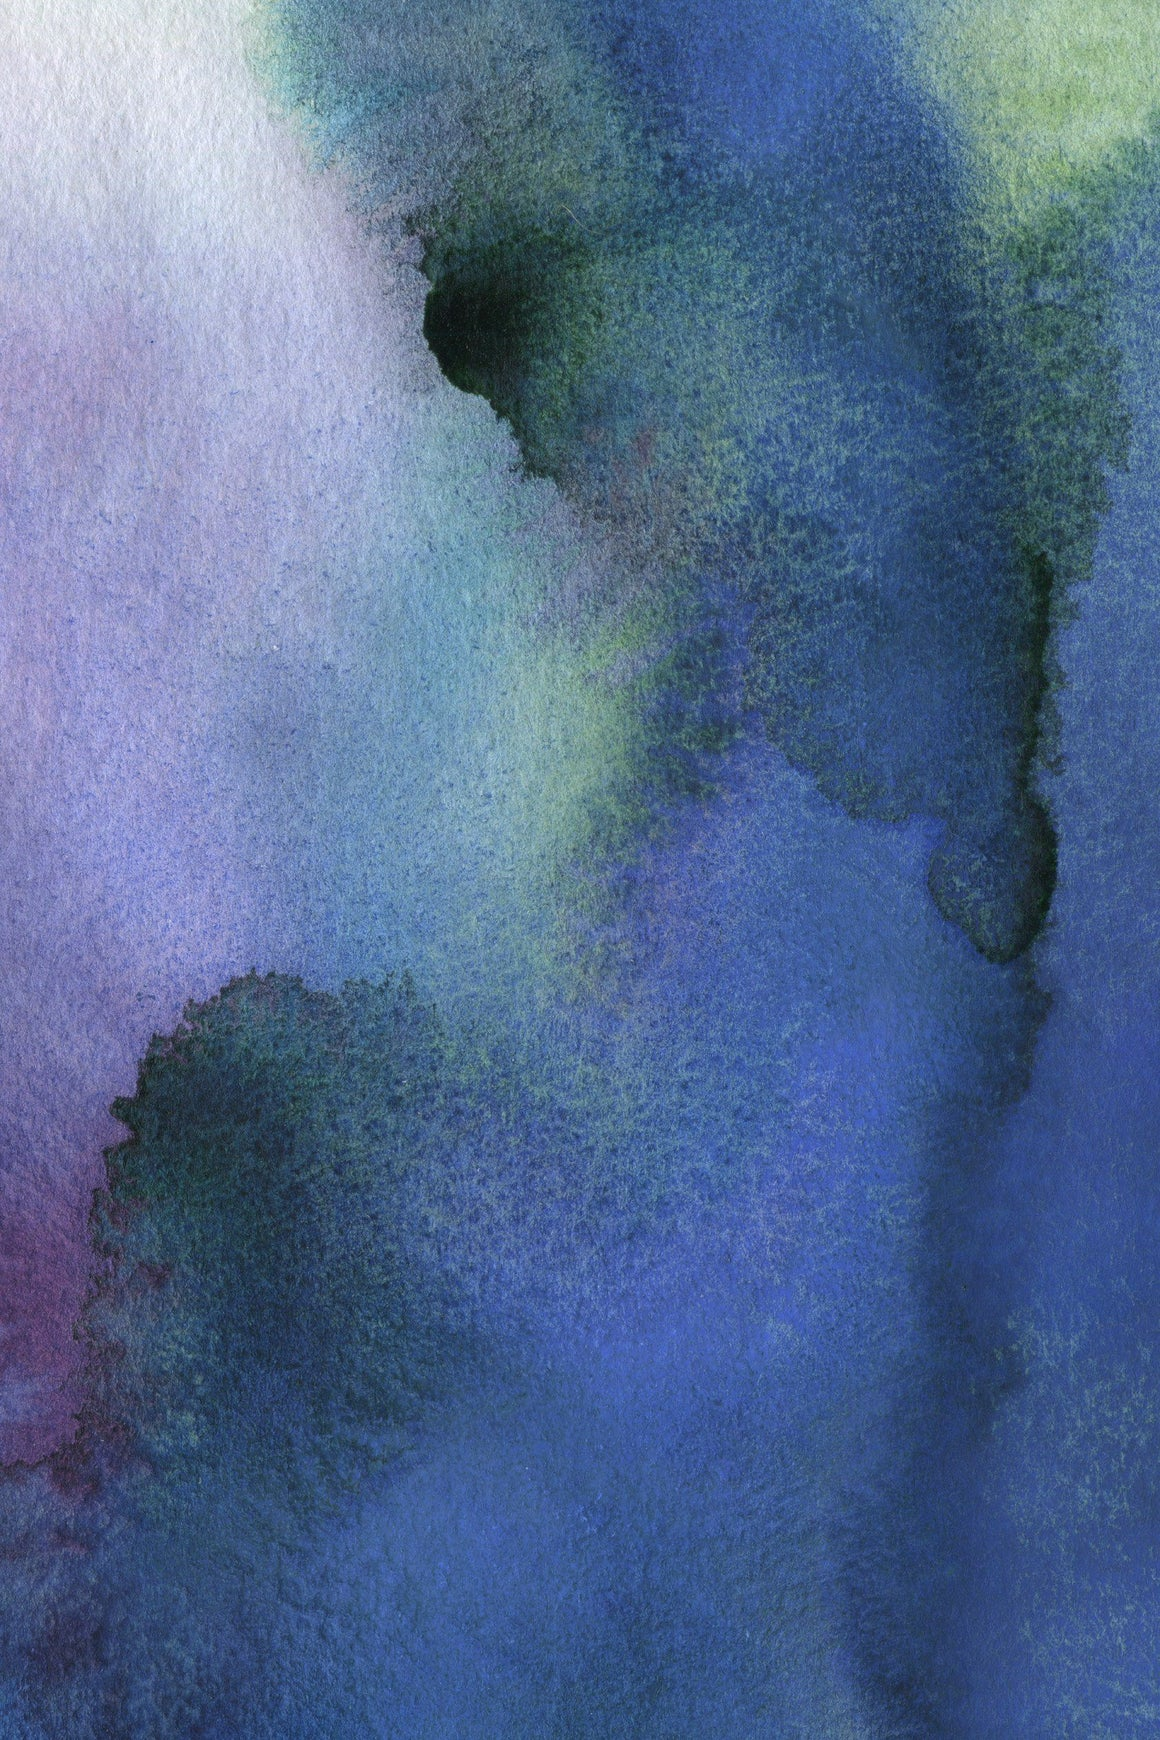 Watercolor painting in dark blue, purple, and green ink where the ink collides with one another to create an ombre effect